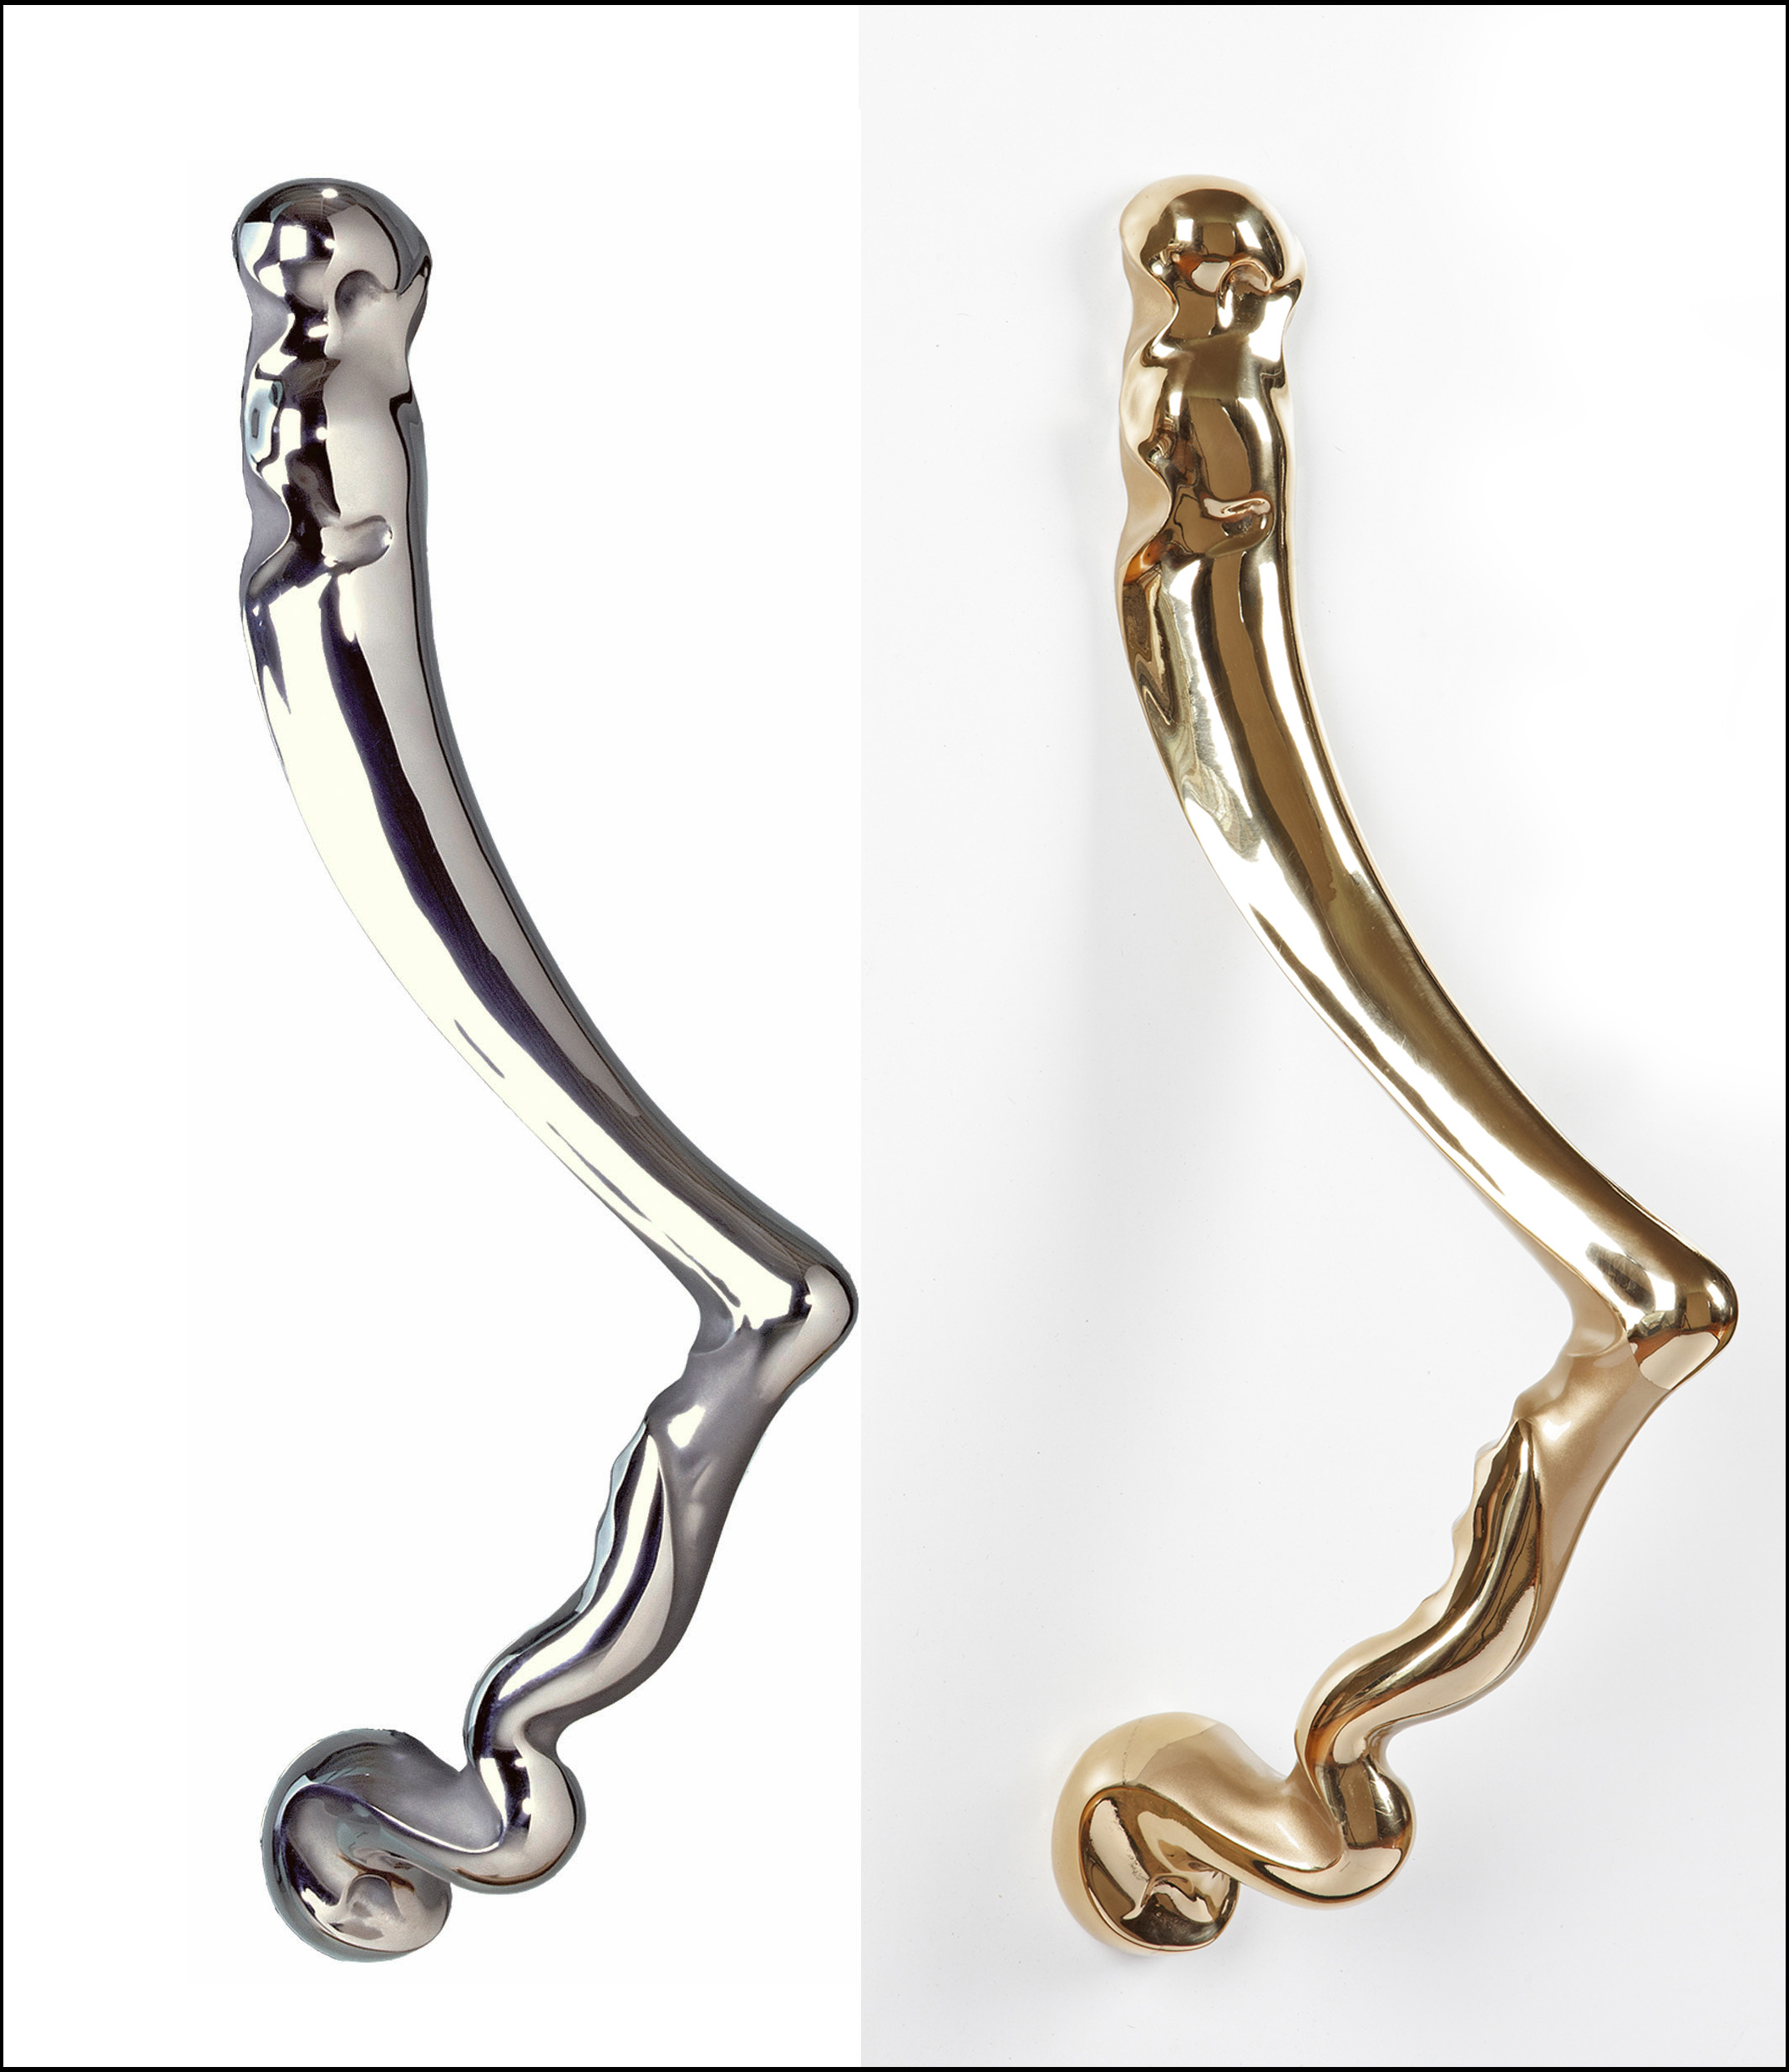 Modern Door Pulls began with our Ergo Collection